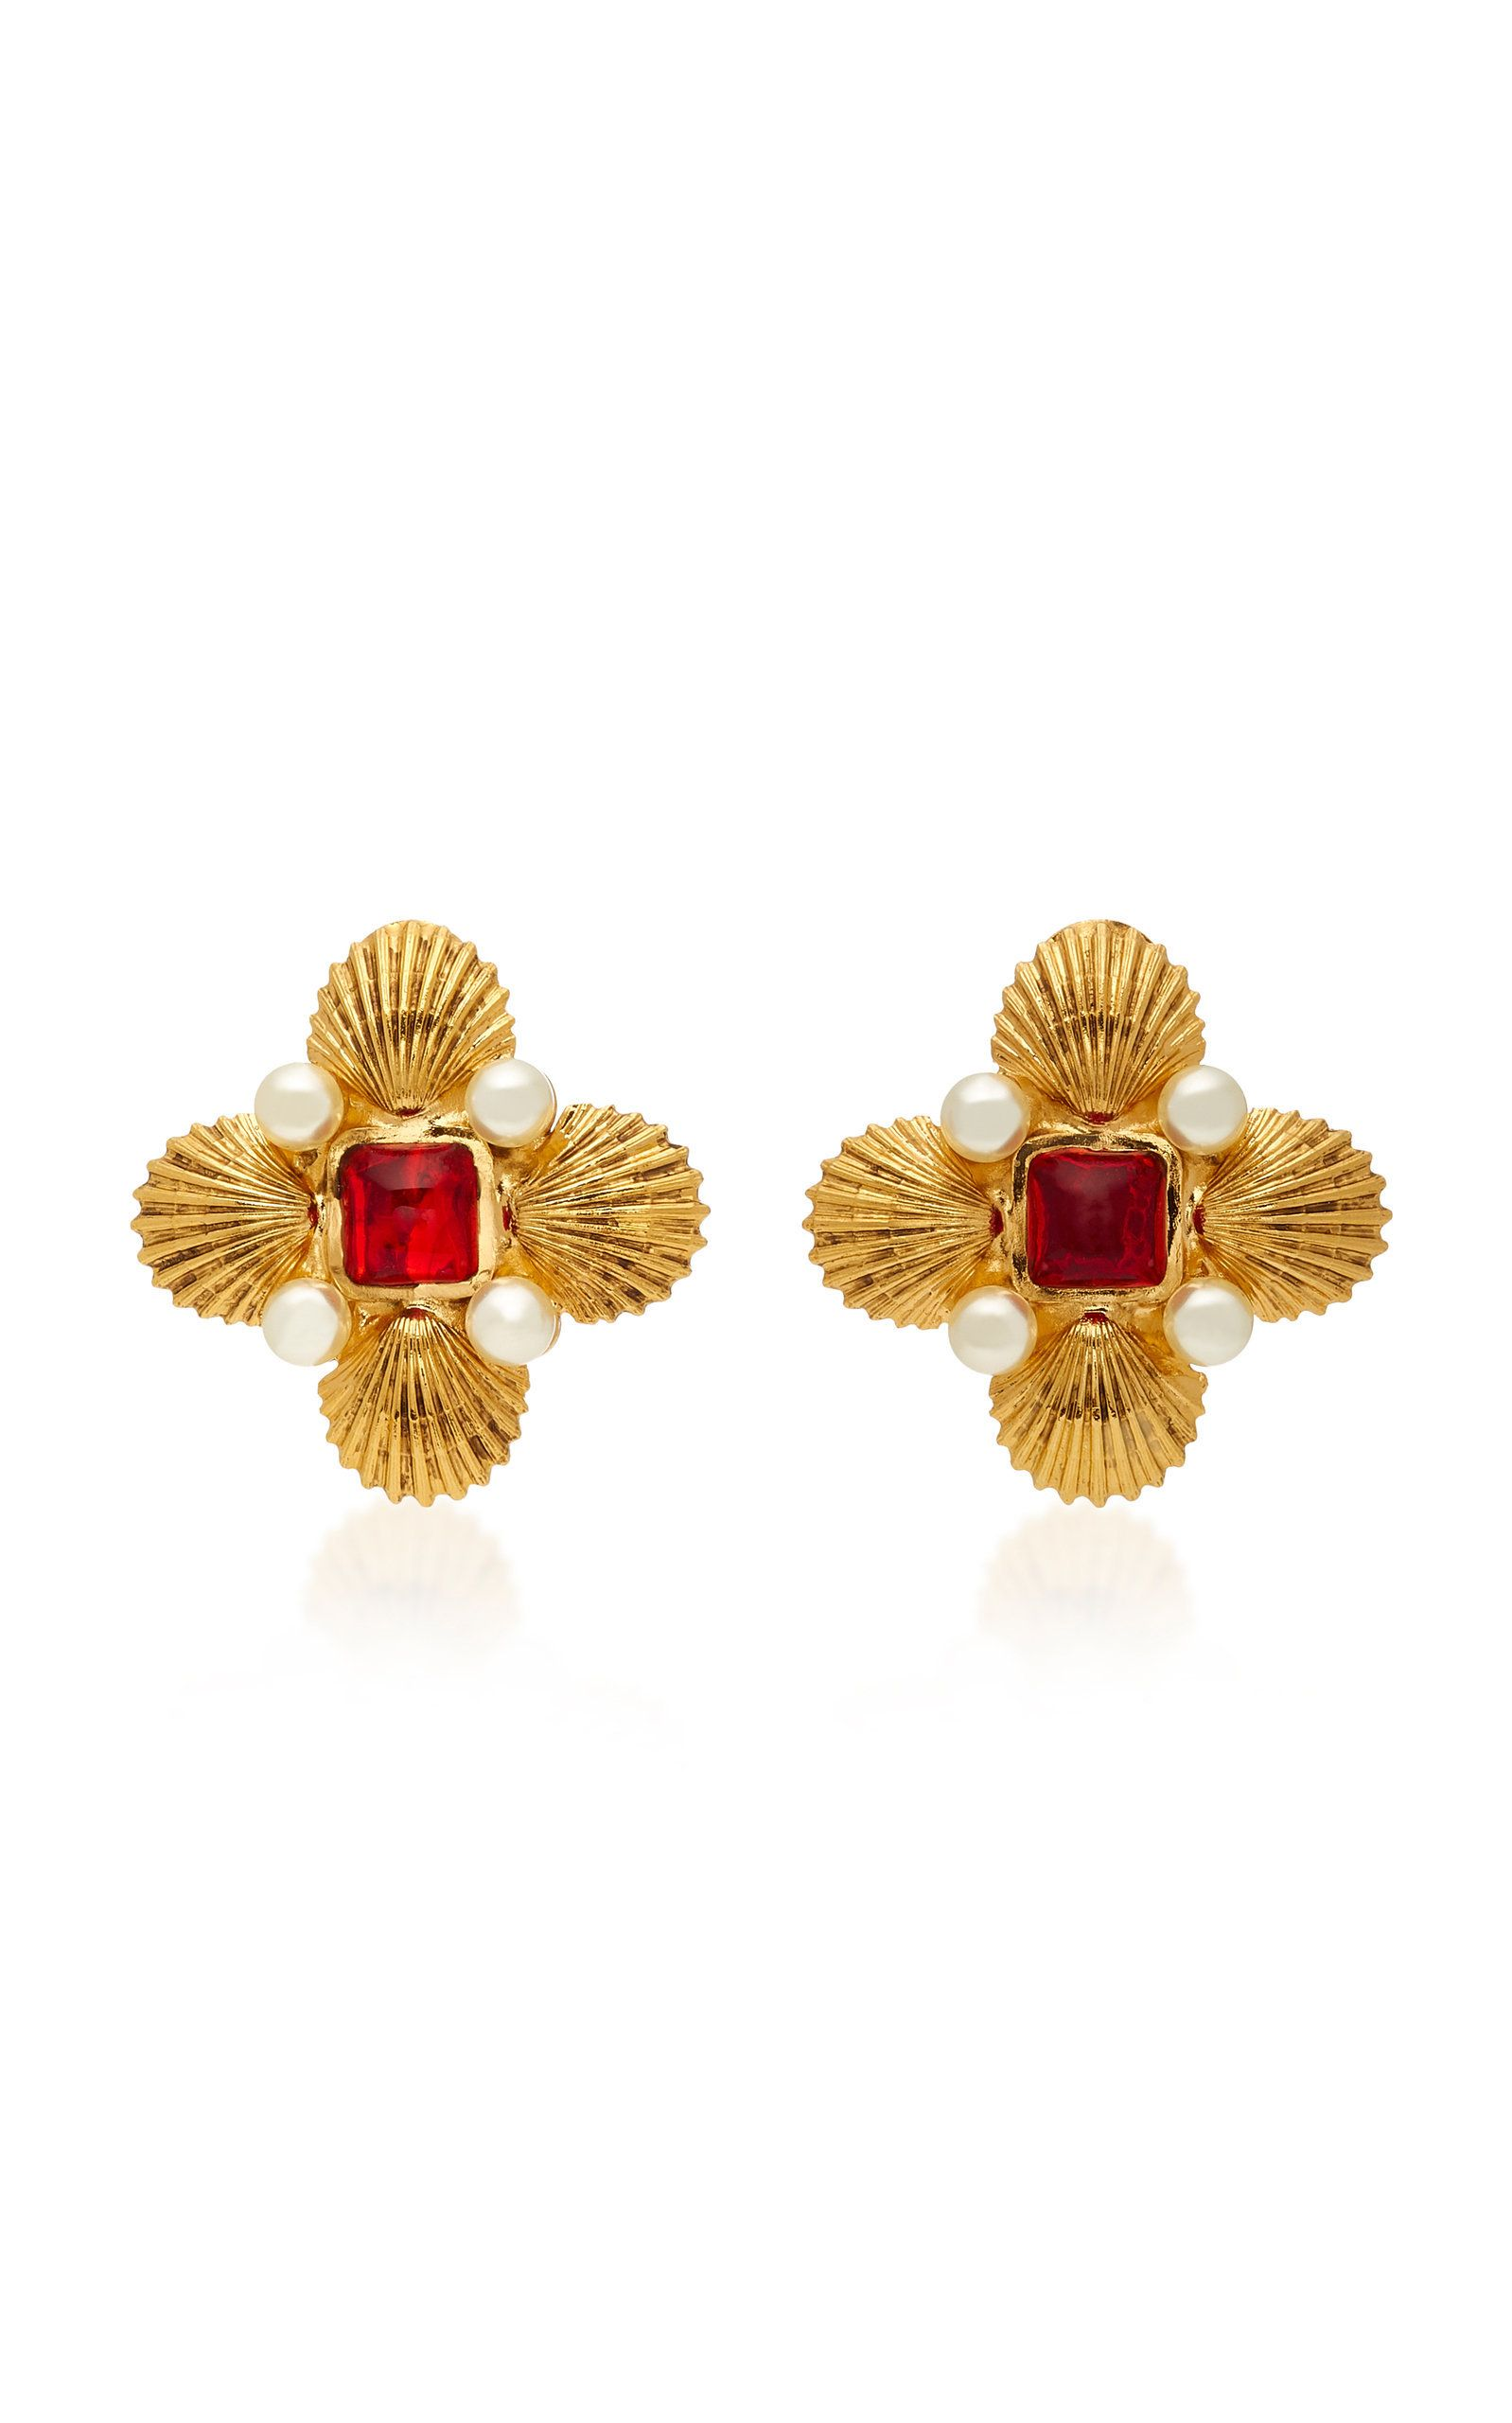 earrings diamonds jewels pure sale just shop gold yellow womens for pull with women online push